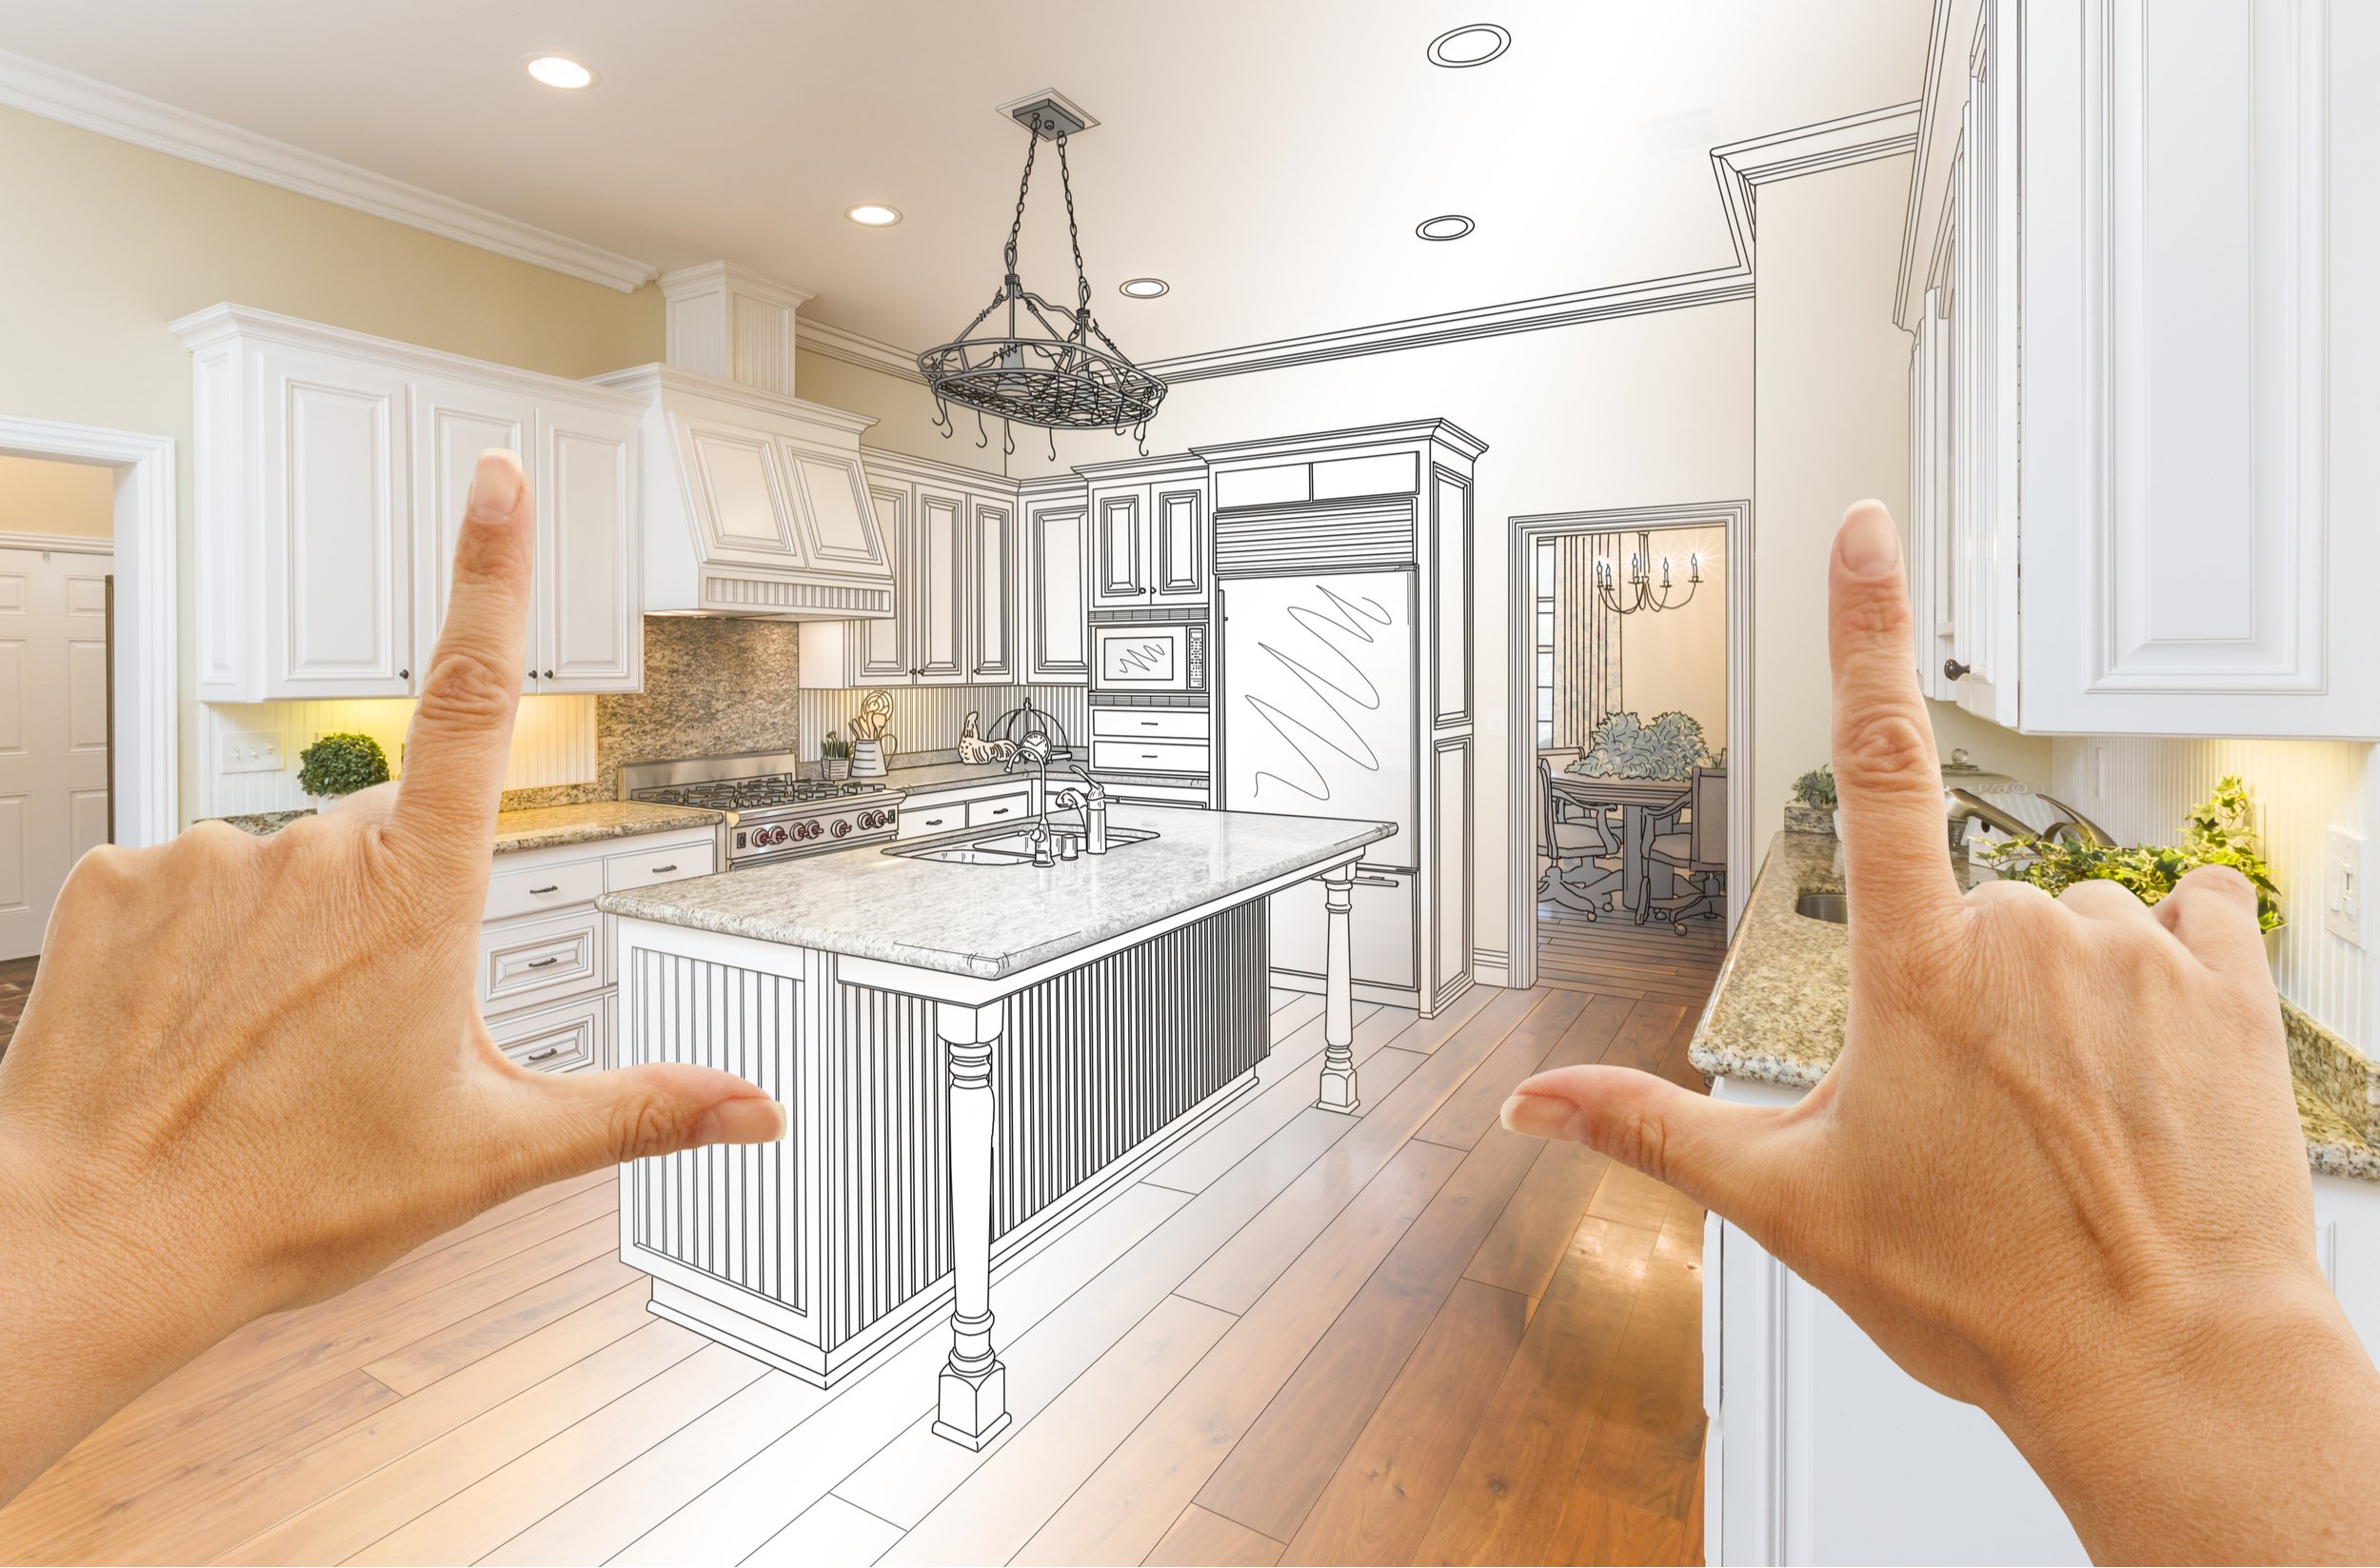 A kitchen that looks beautofully decorated